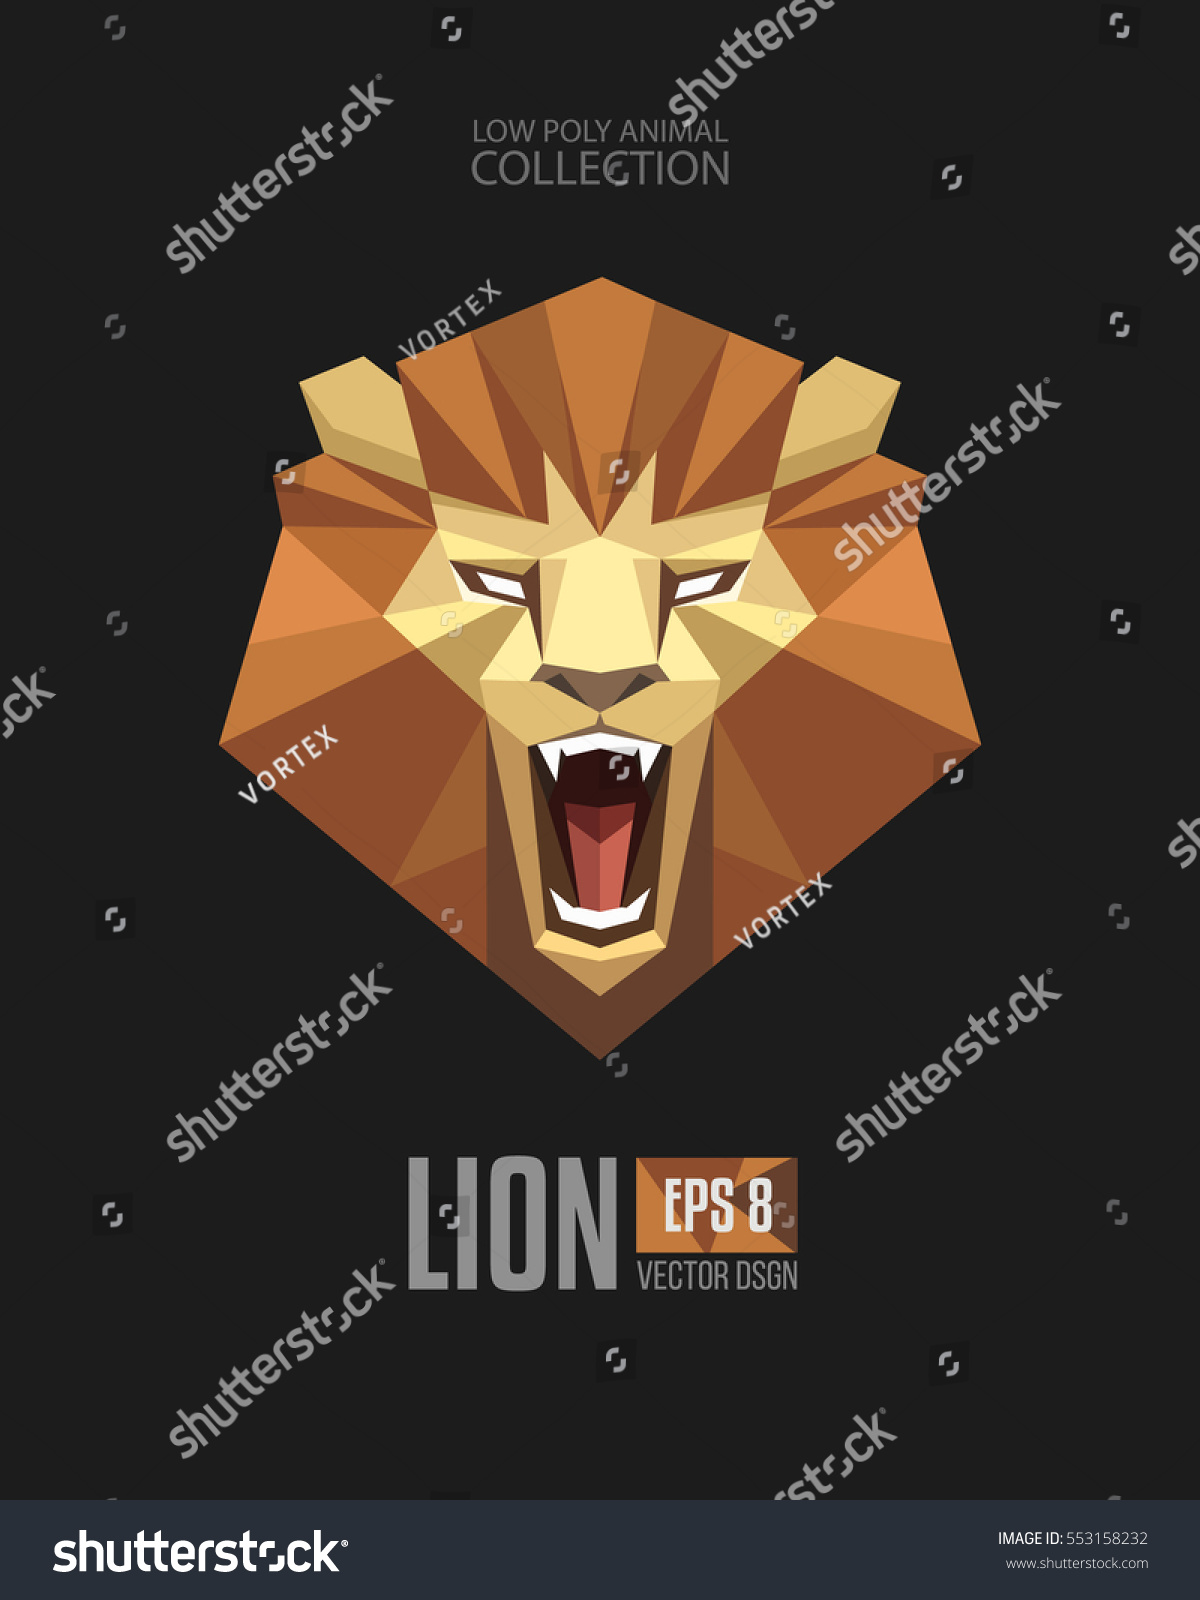 Tiger head triangular icon geometric trendy stock vector image - Trendy Geometric Low Polygon Style Lion Majestic Roaring Looking Face Head Mascot Logo Icon Origami